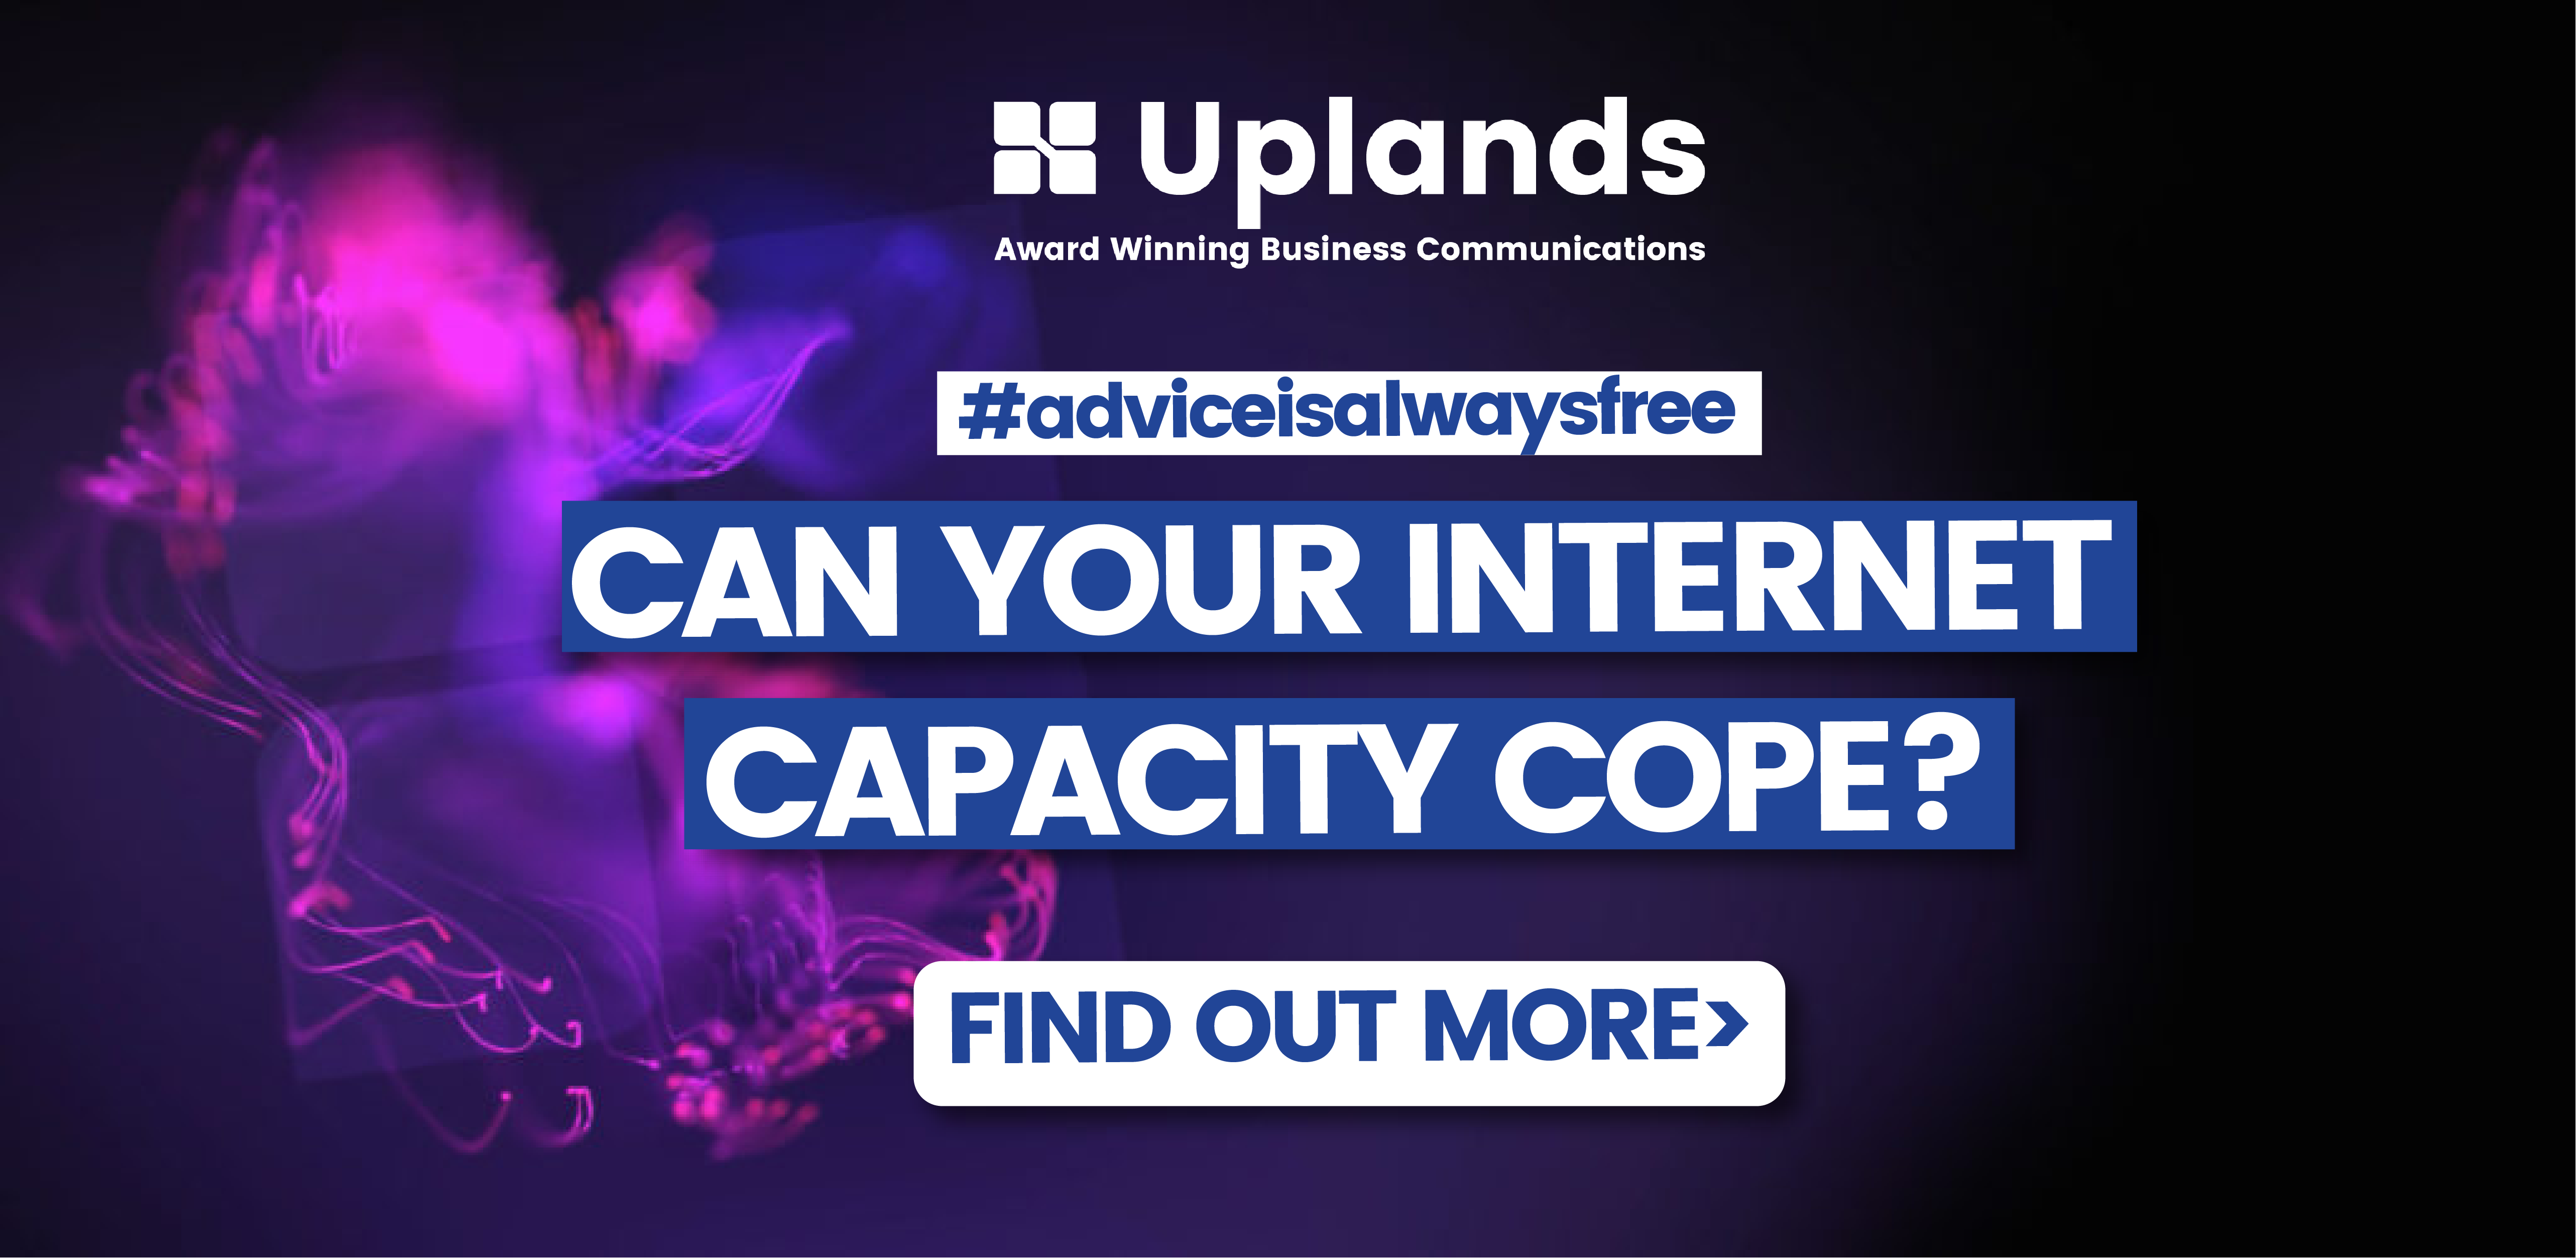 Can your internet capacity cope?